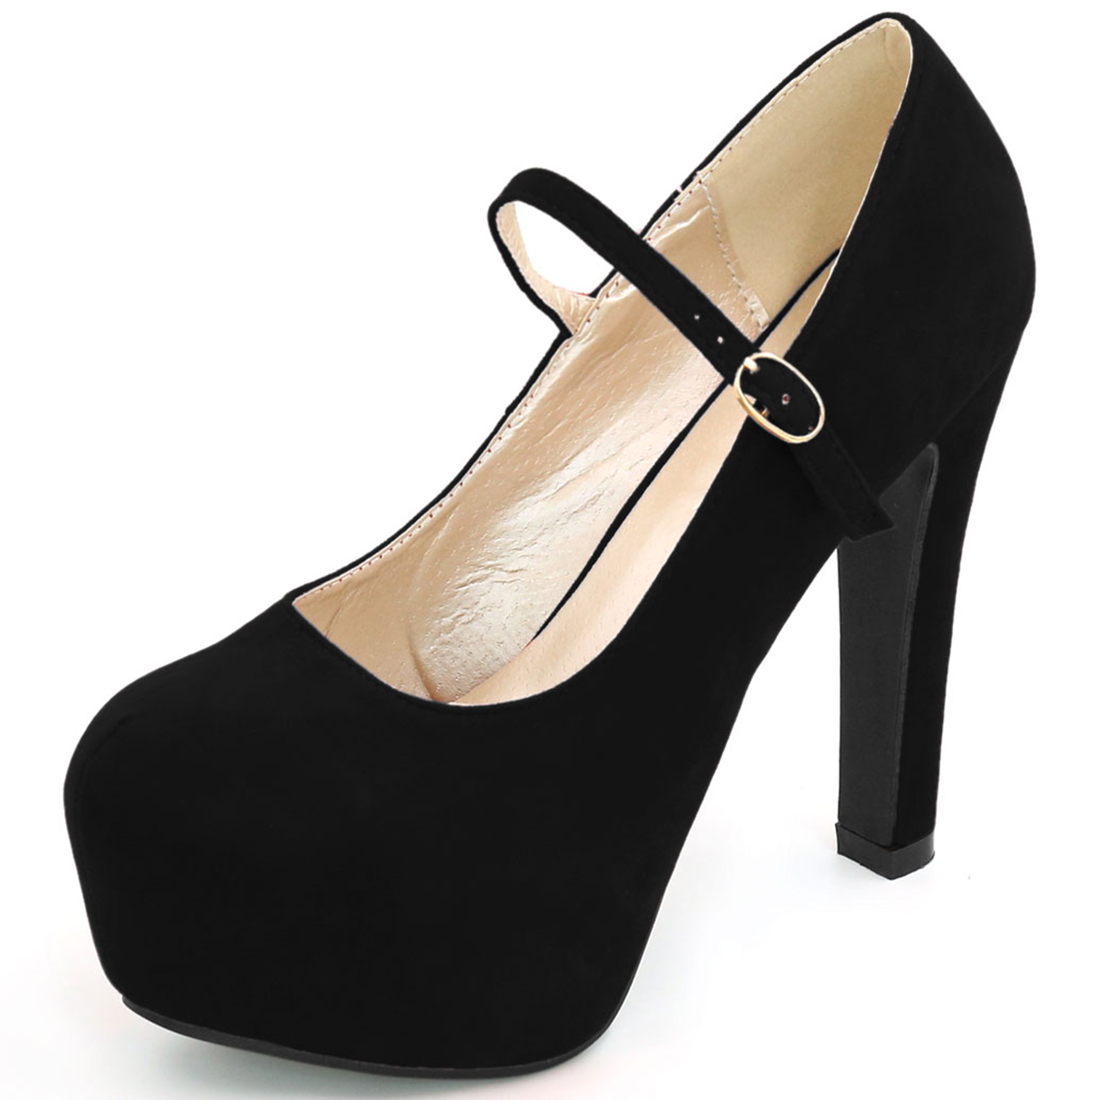 Woman Rounded Toe Chunky Platform Buckle Strap Pumps Black US 7.5